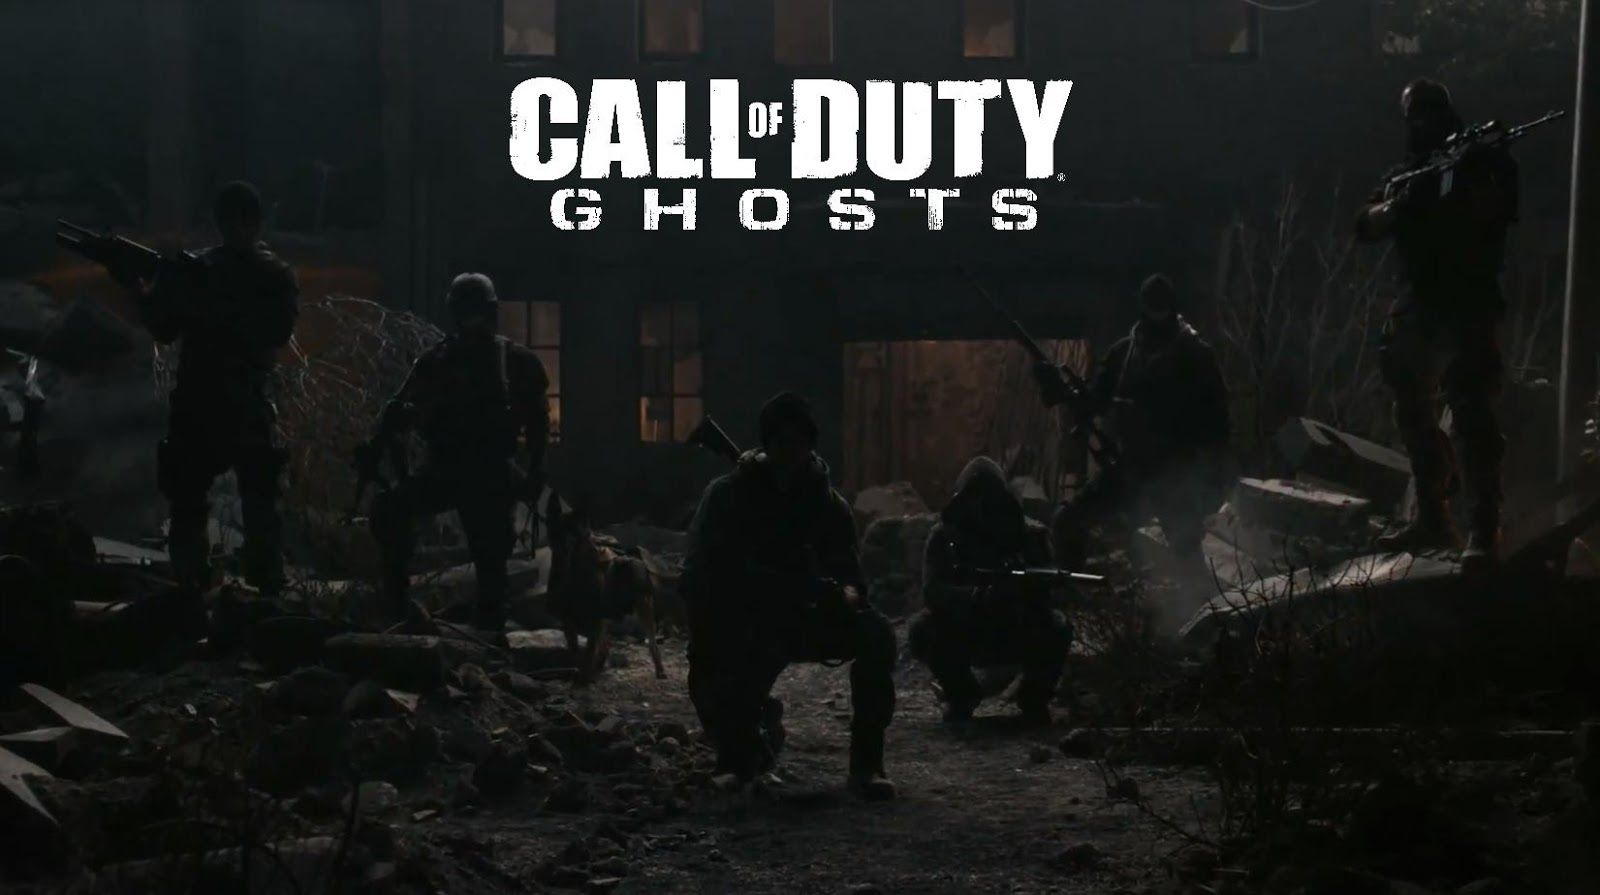 Call Of Duty Ghosts Wallpaper Call Of Duty Ghosts Call Of Duty